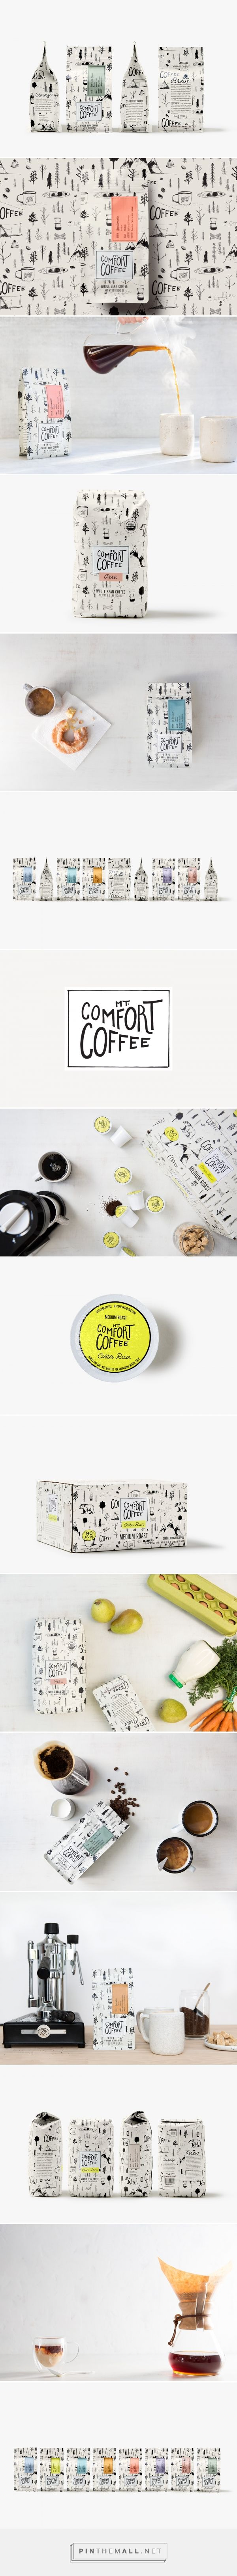 Mt. Comfort Coffee Packaging by Nicole LaFave | Fivestar Branding Agency – Design and Branding Agency & Curated Inspiration Gallery  #coffeepackaging #packaging #packagingdesign #coffee #design #designinspiration